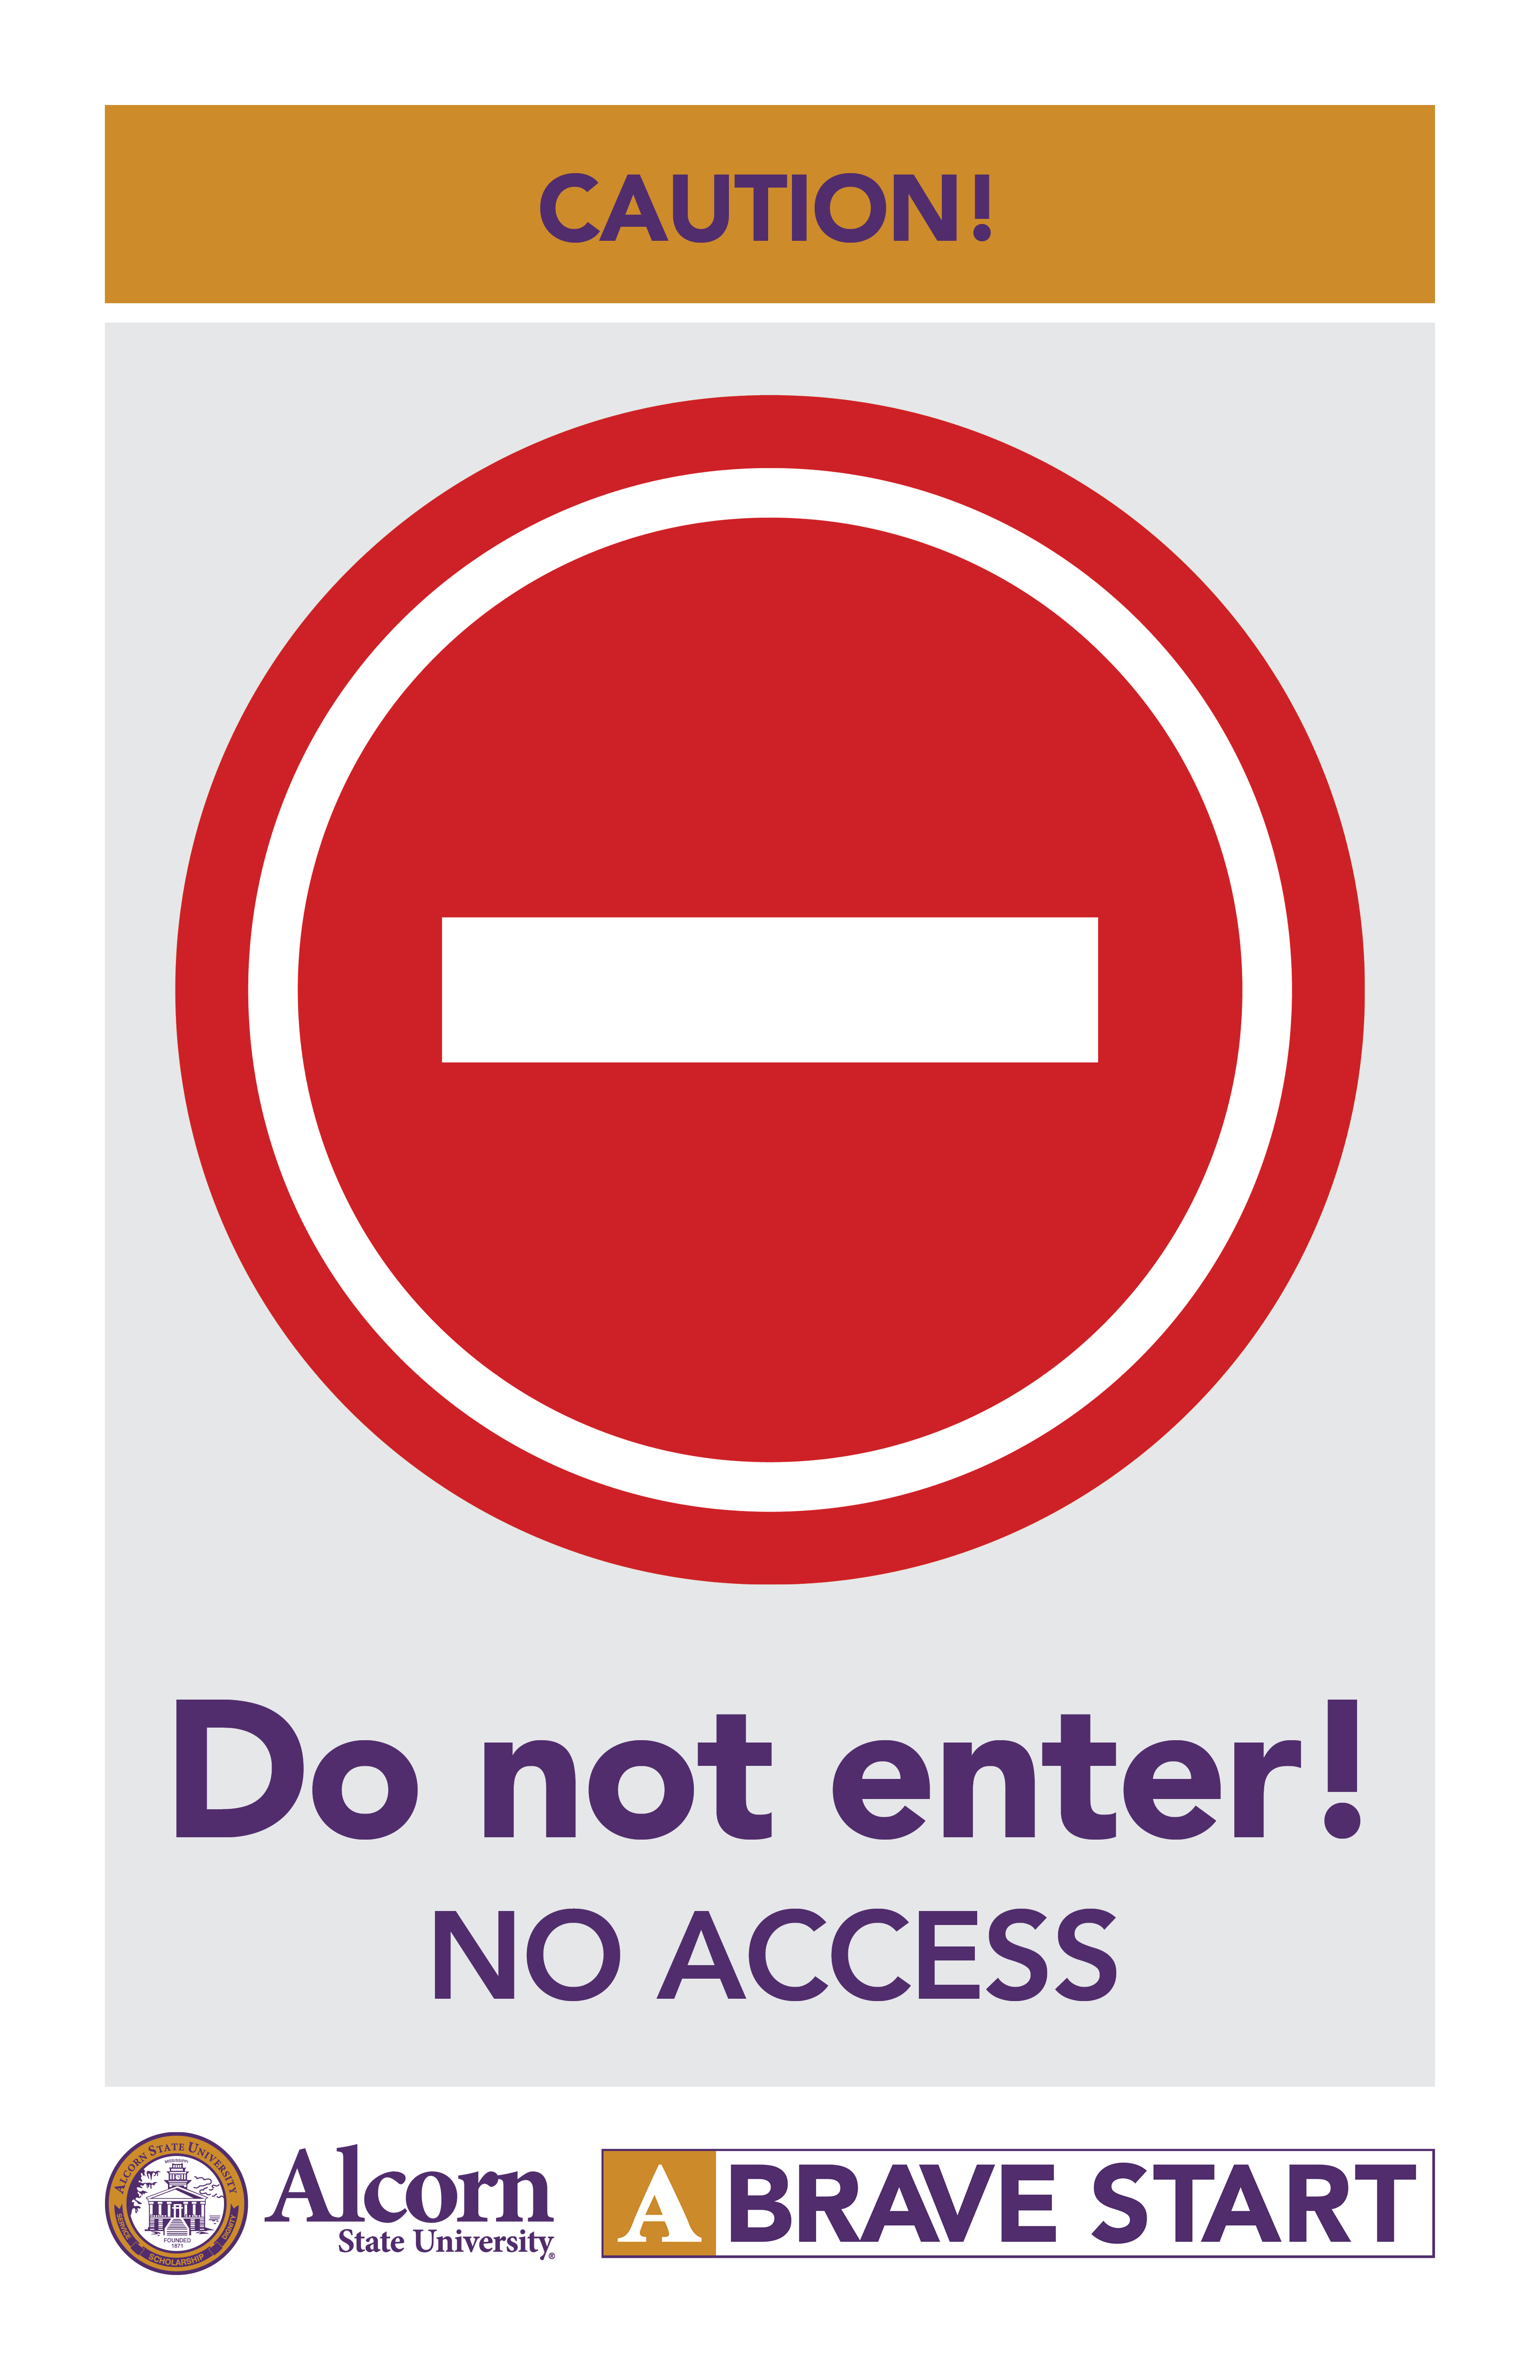 CAUTION! (Picture of no entry red circle) Do not enter! NO ACCESS (Alcorn logo mark. A Brave Start logo mark.)